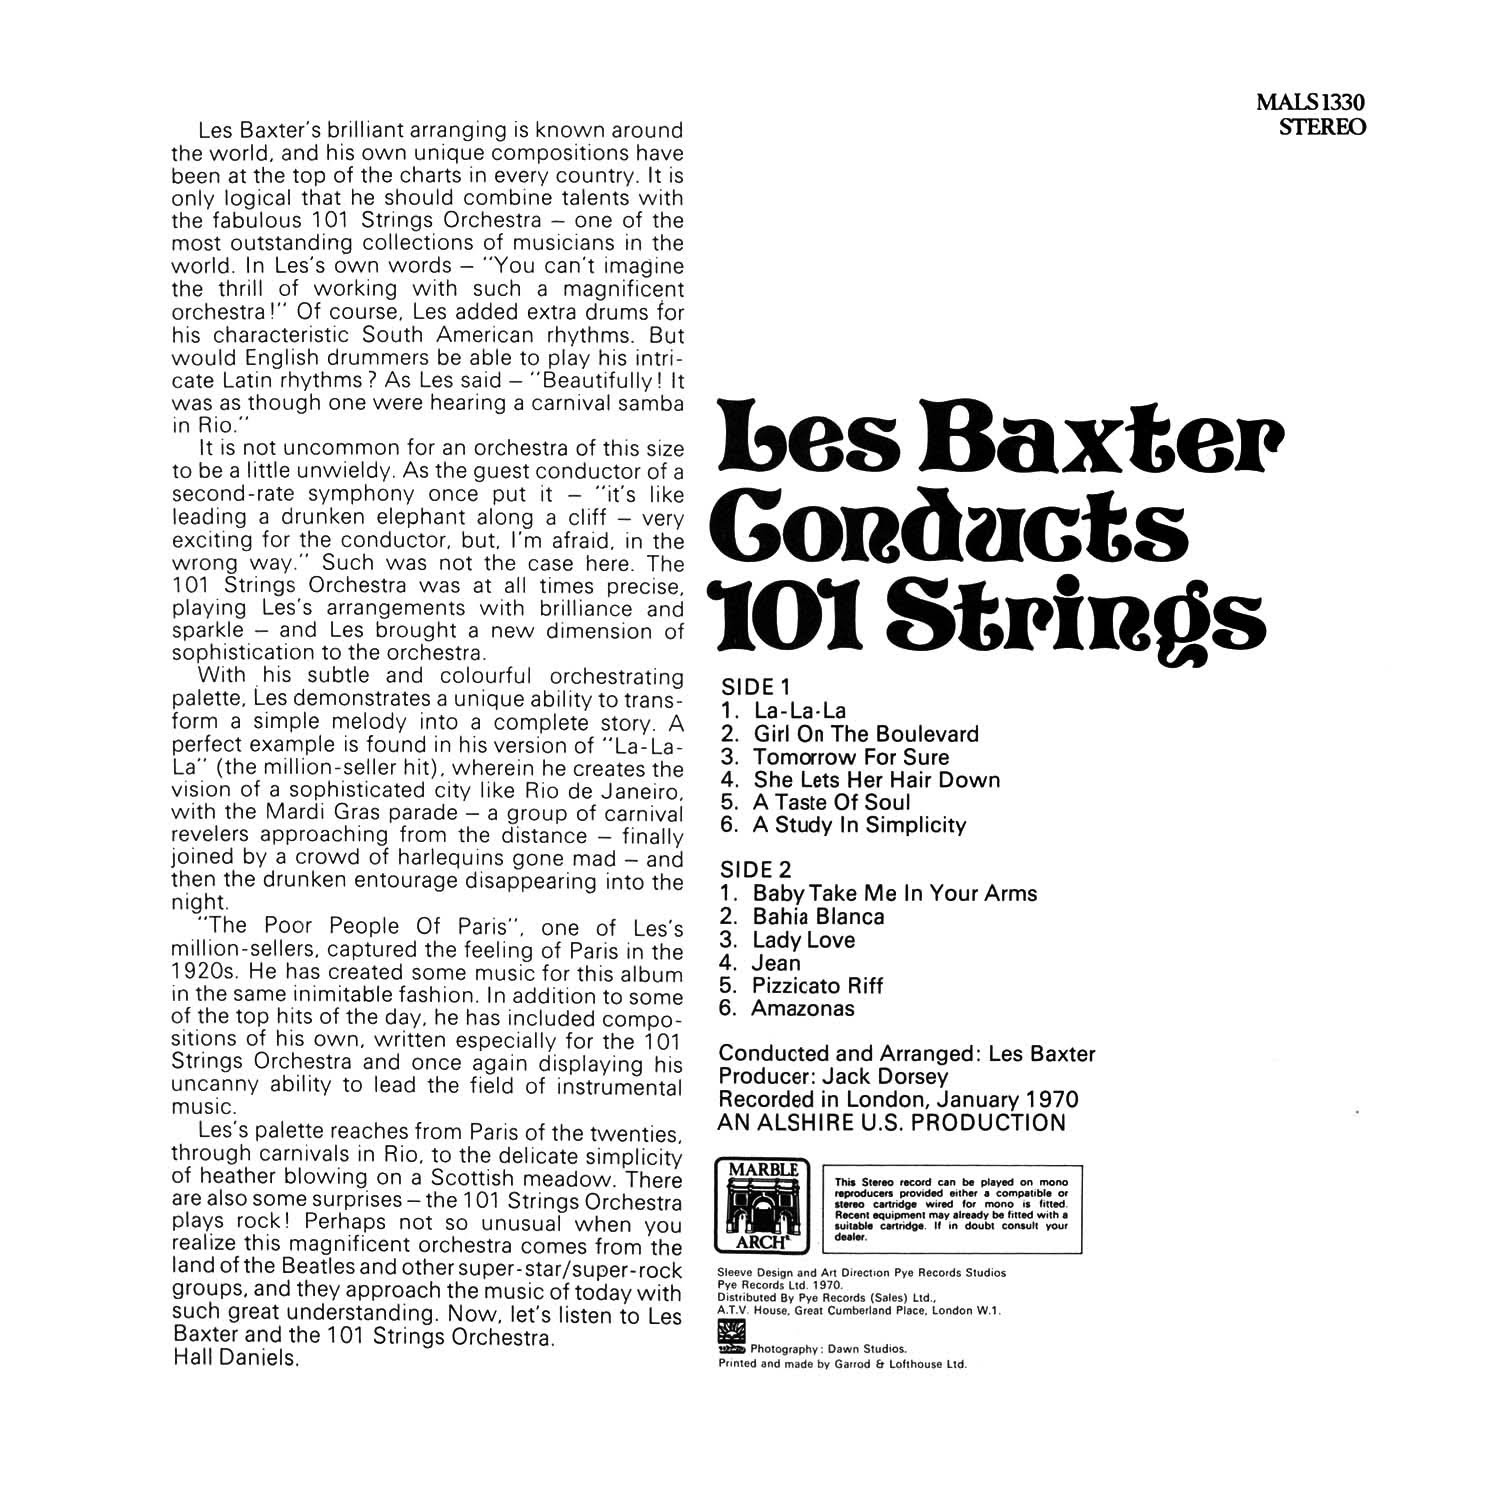 101 Strings, Les Baxter